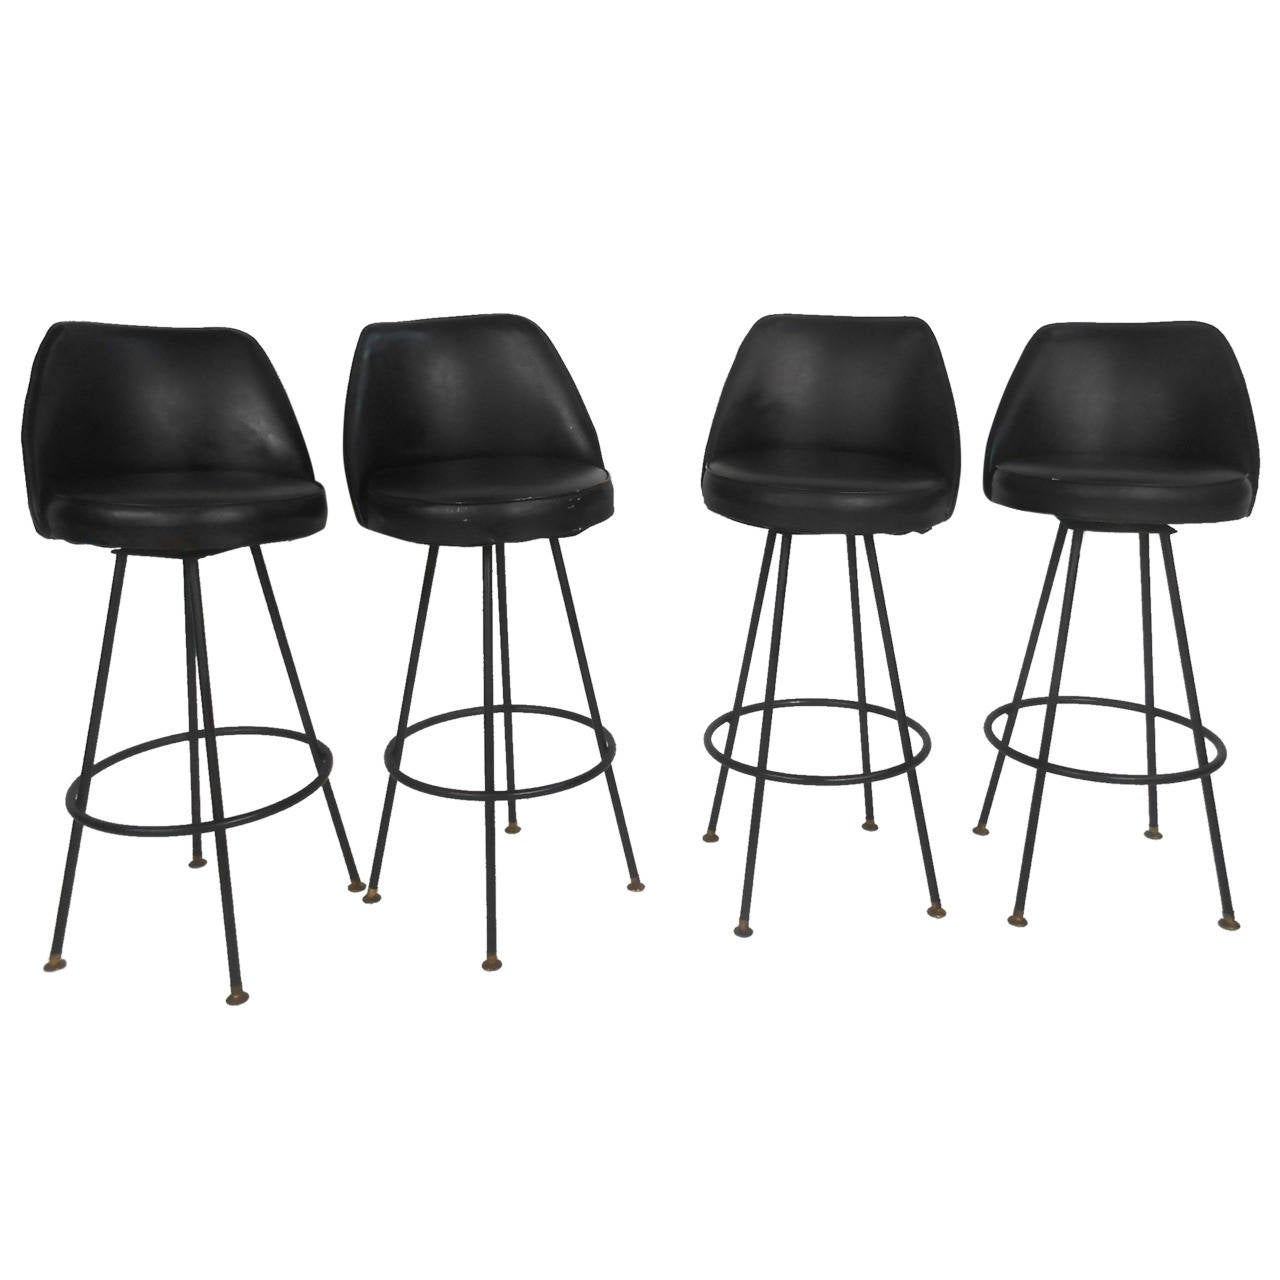 Four Mid Century Modern Bar Stools By Admiral Chrome